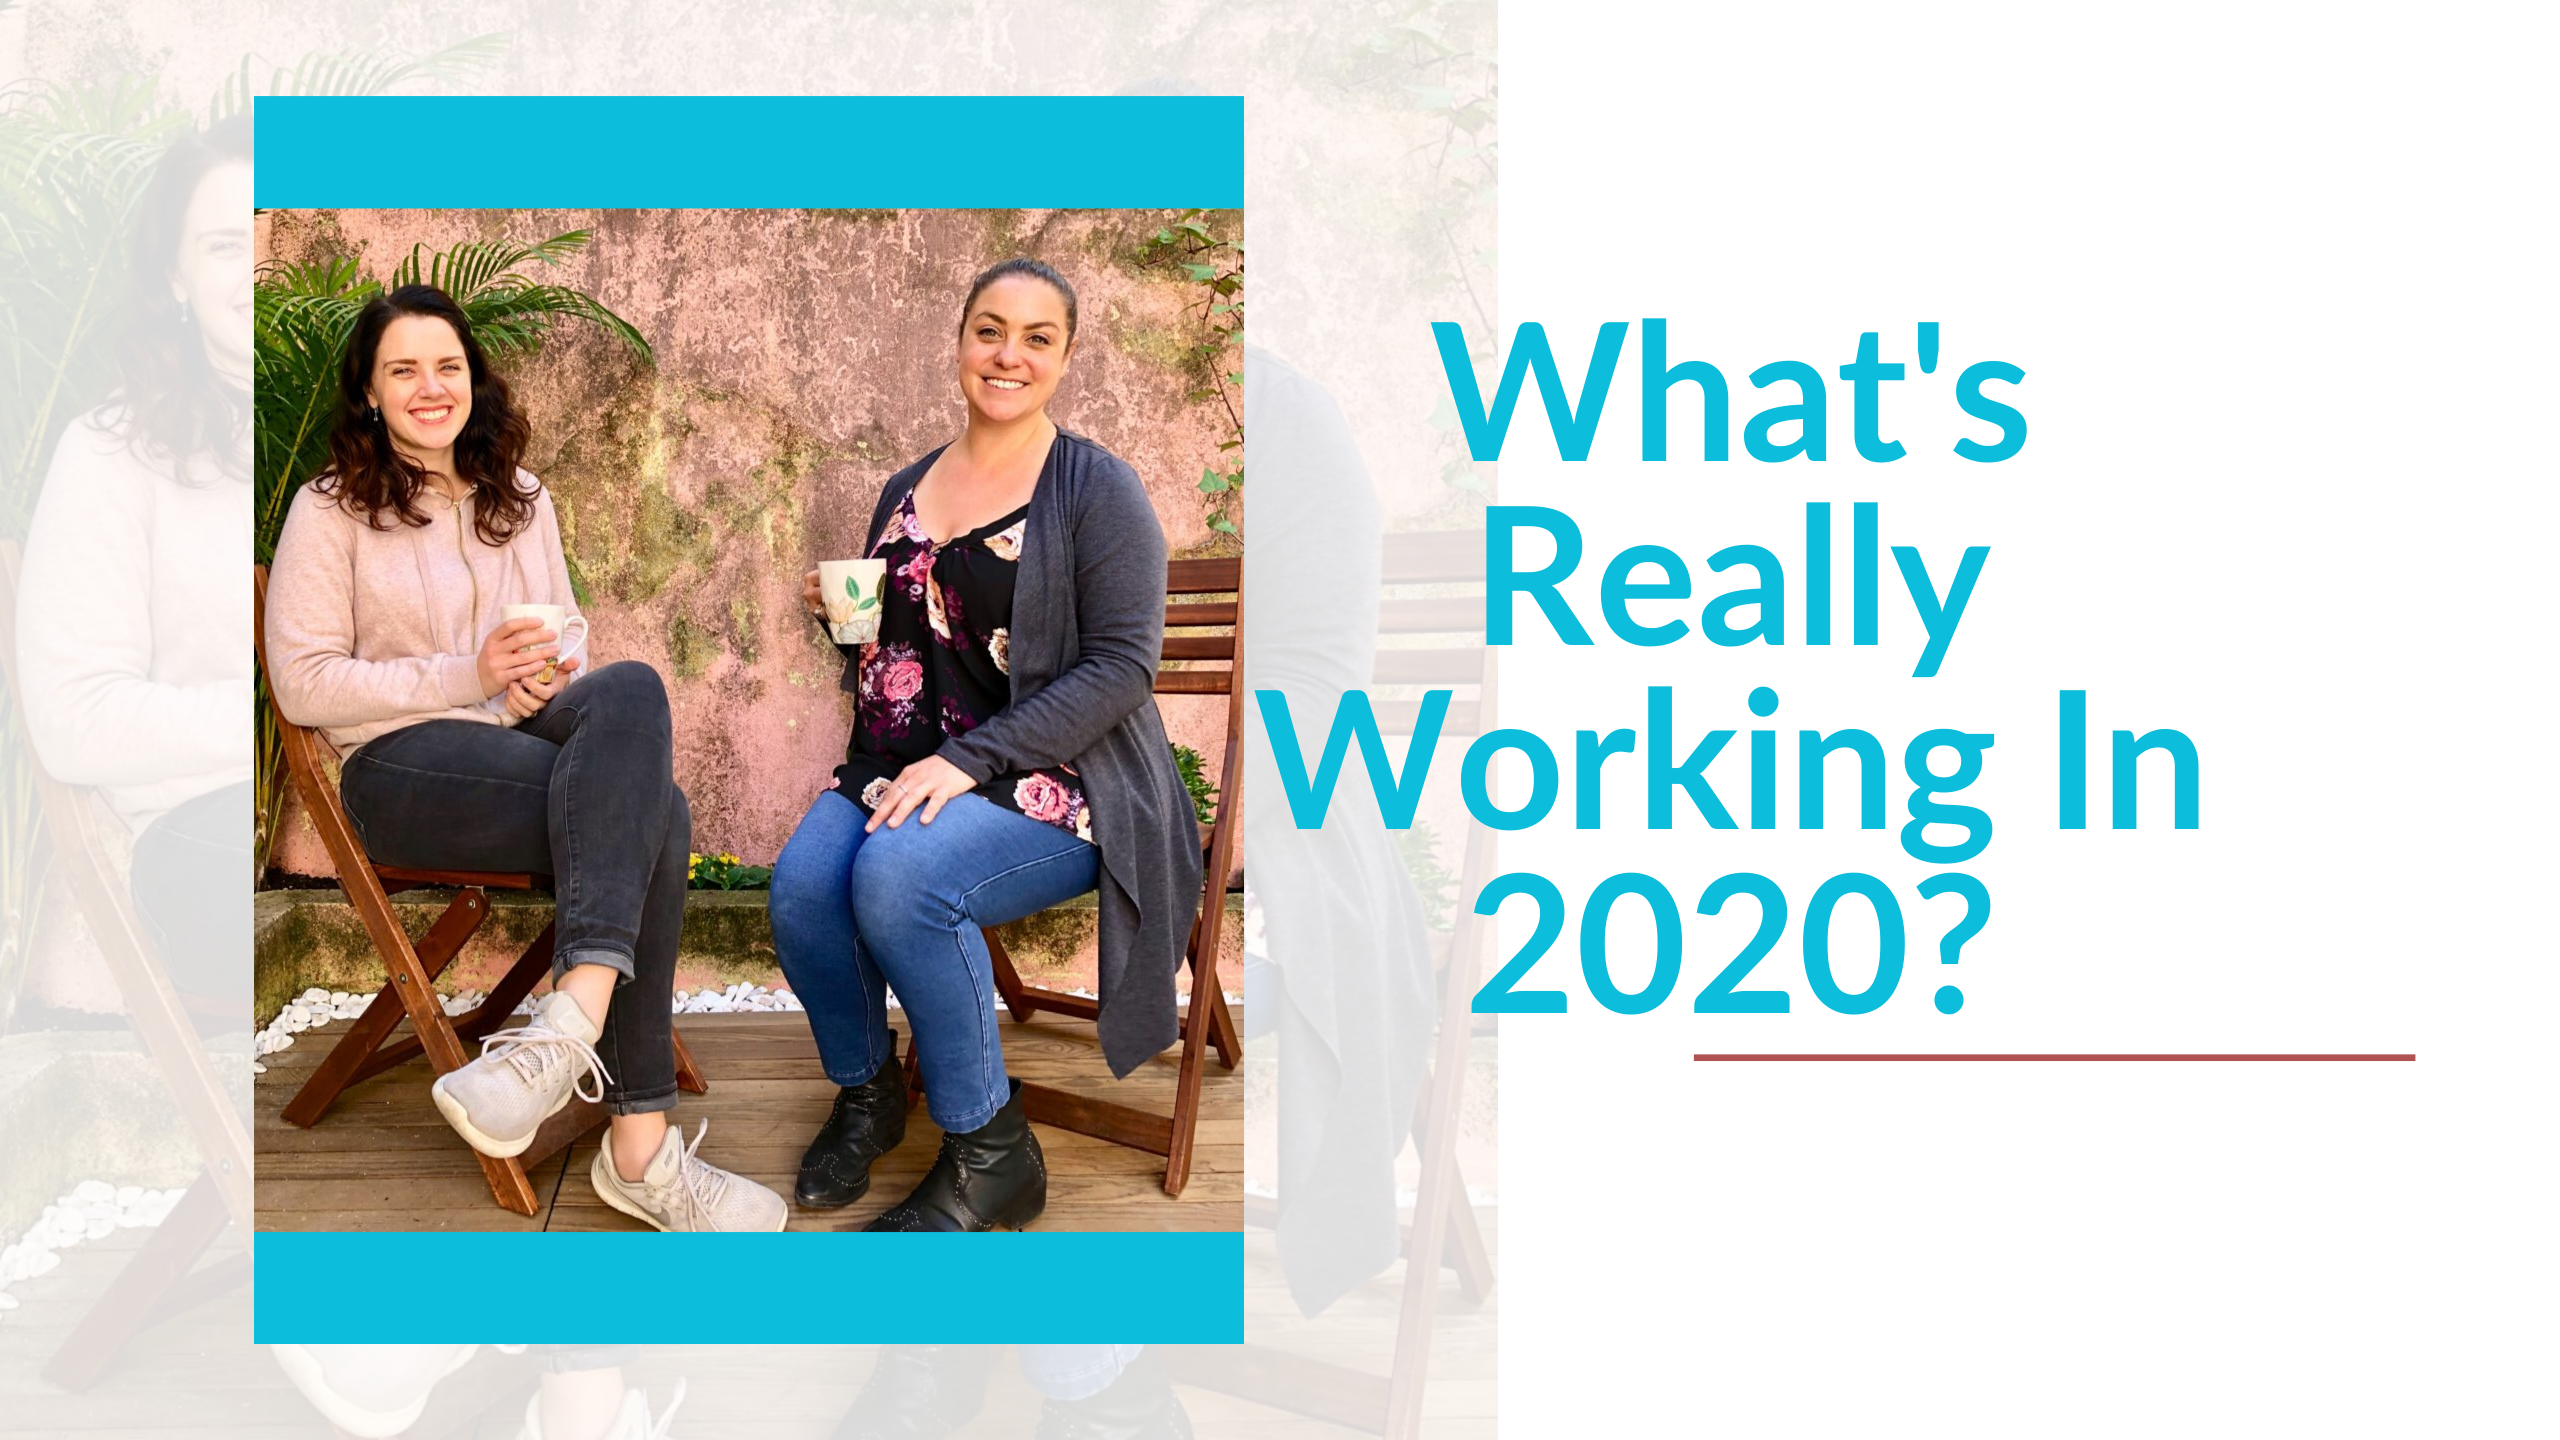 What's Working Best in 2020